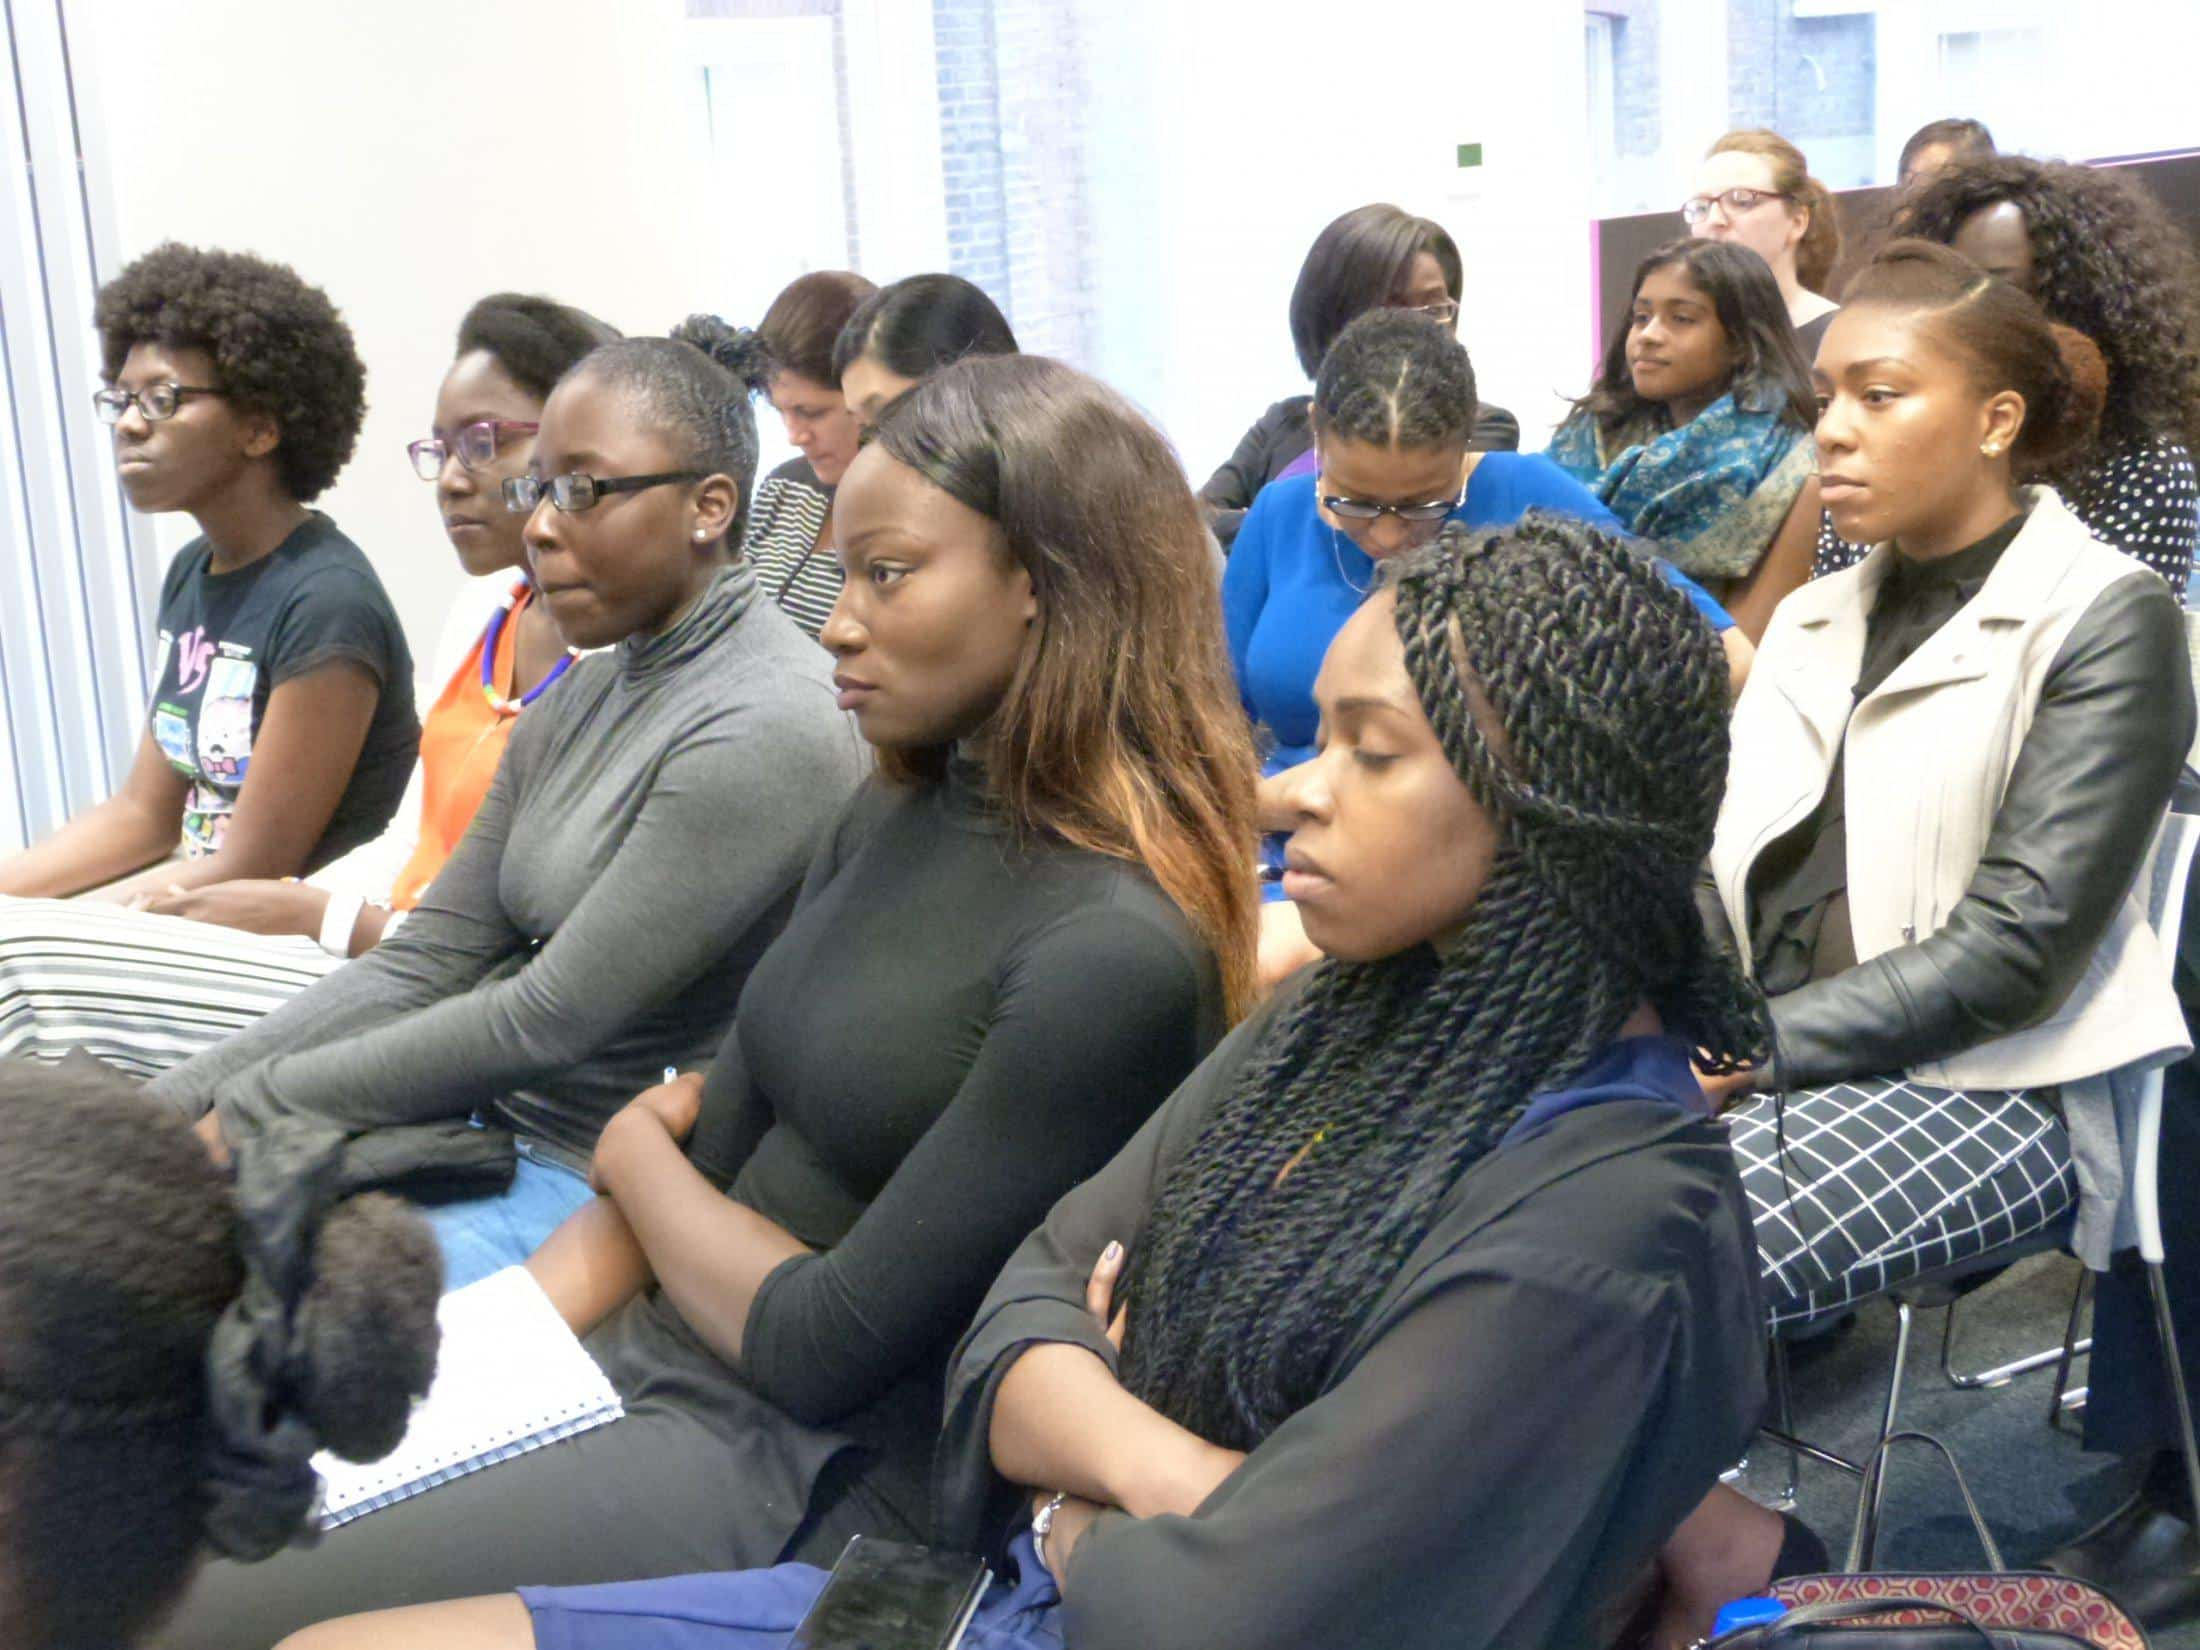 After the successful launch of Women in Technology Africa in London earlier this year, Africa's leading ladies are hosting their end of year event in London on December 2nd.